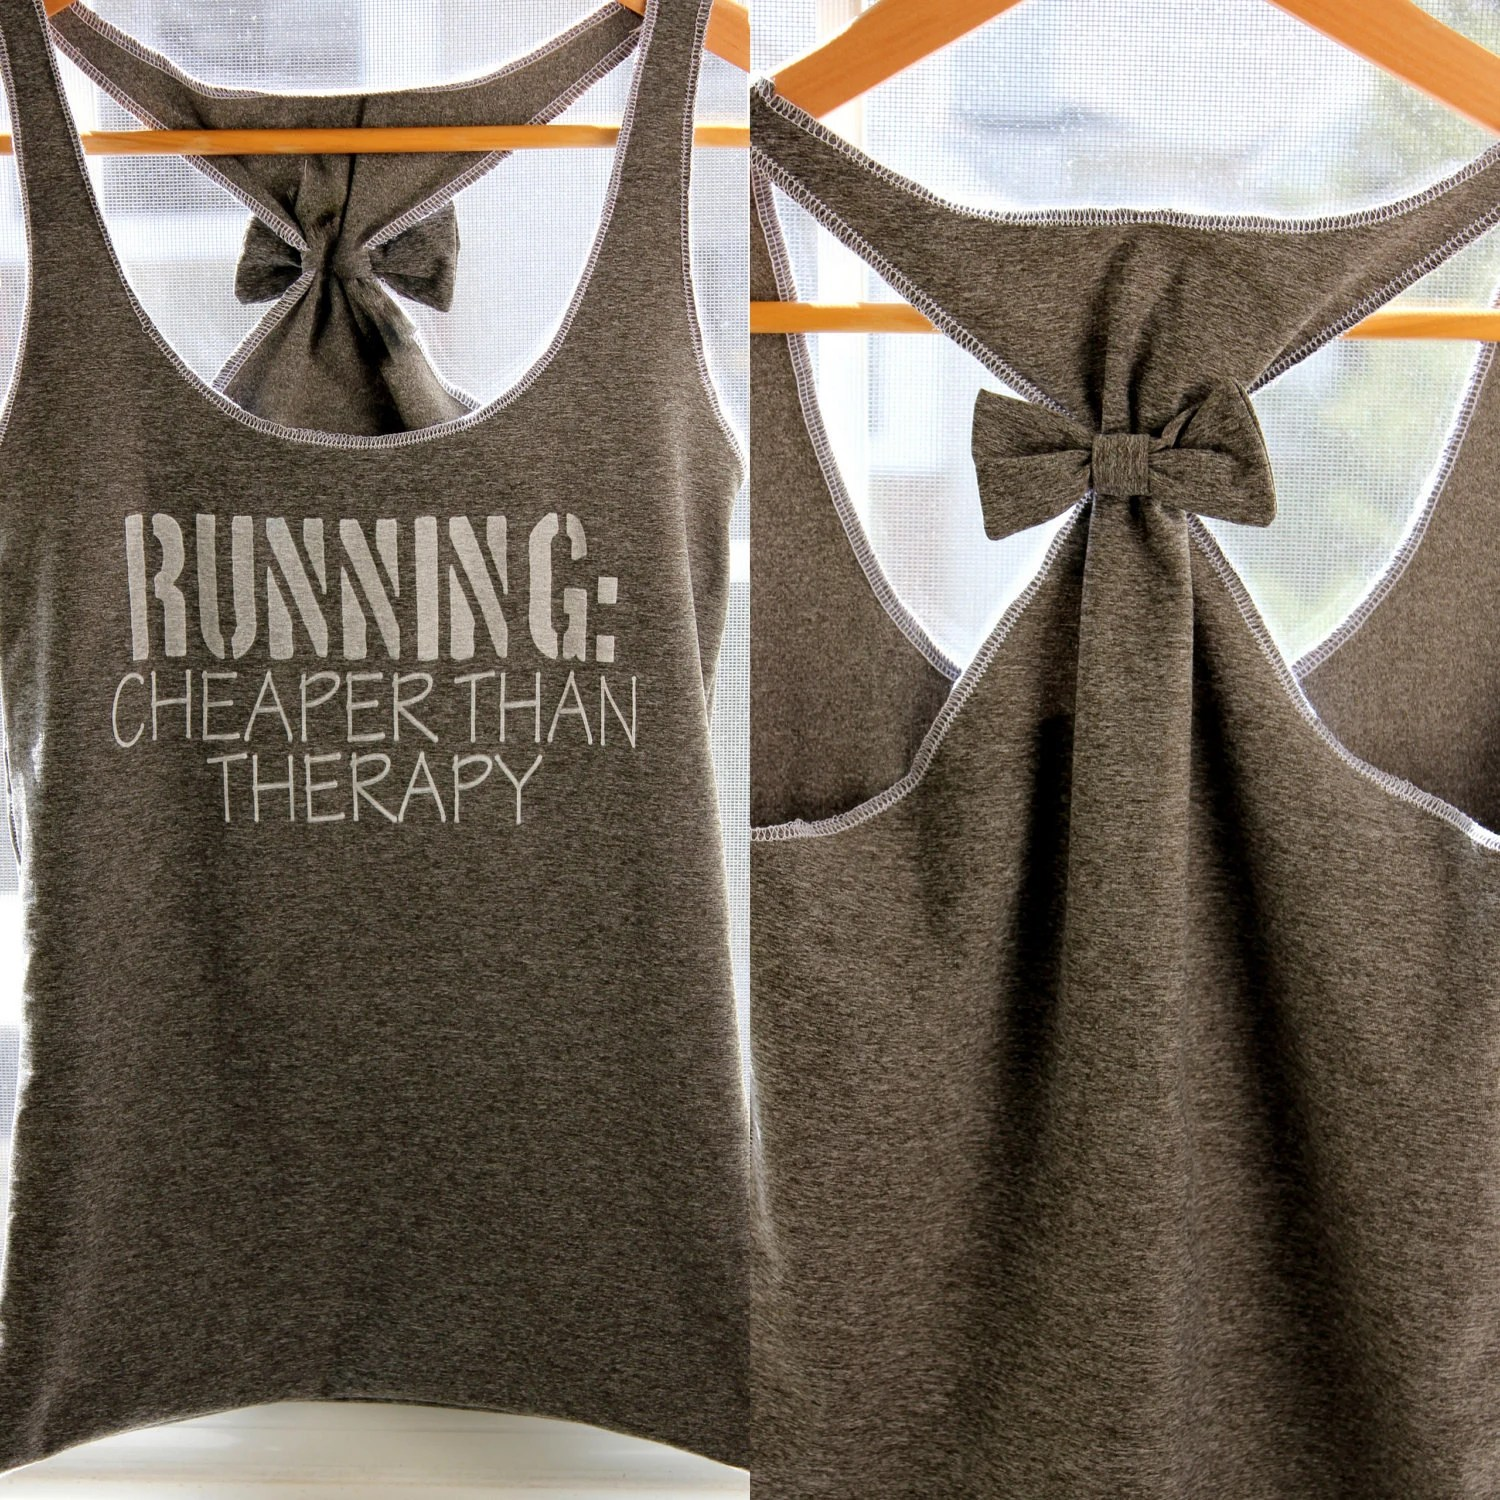 Running Workout Clothes RUNNING Cheaper than Therapy - Large - personTen